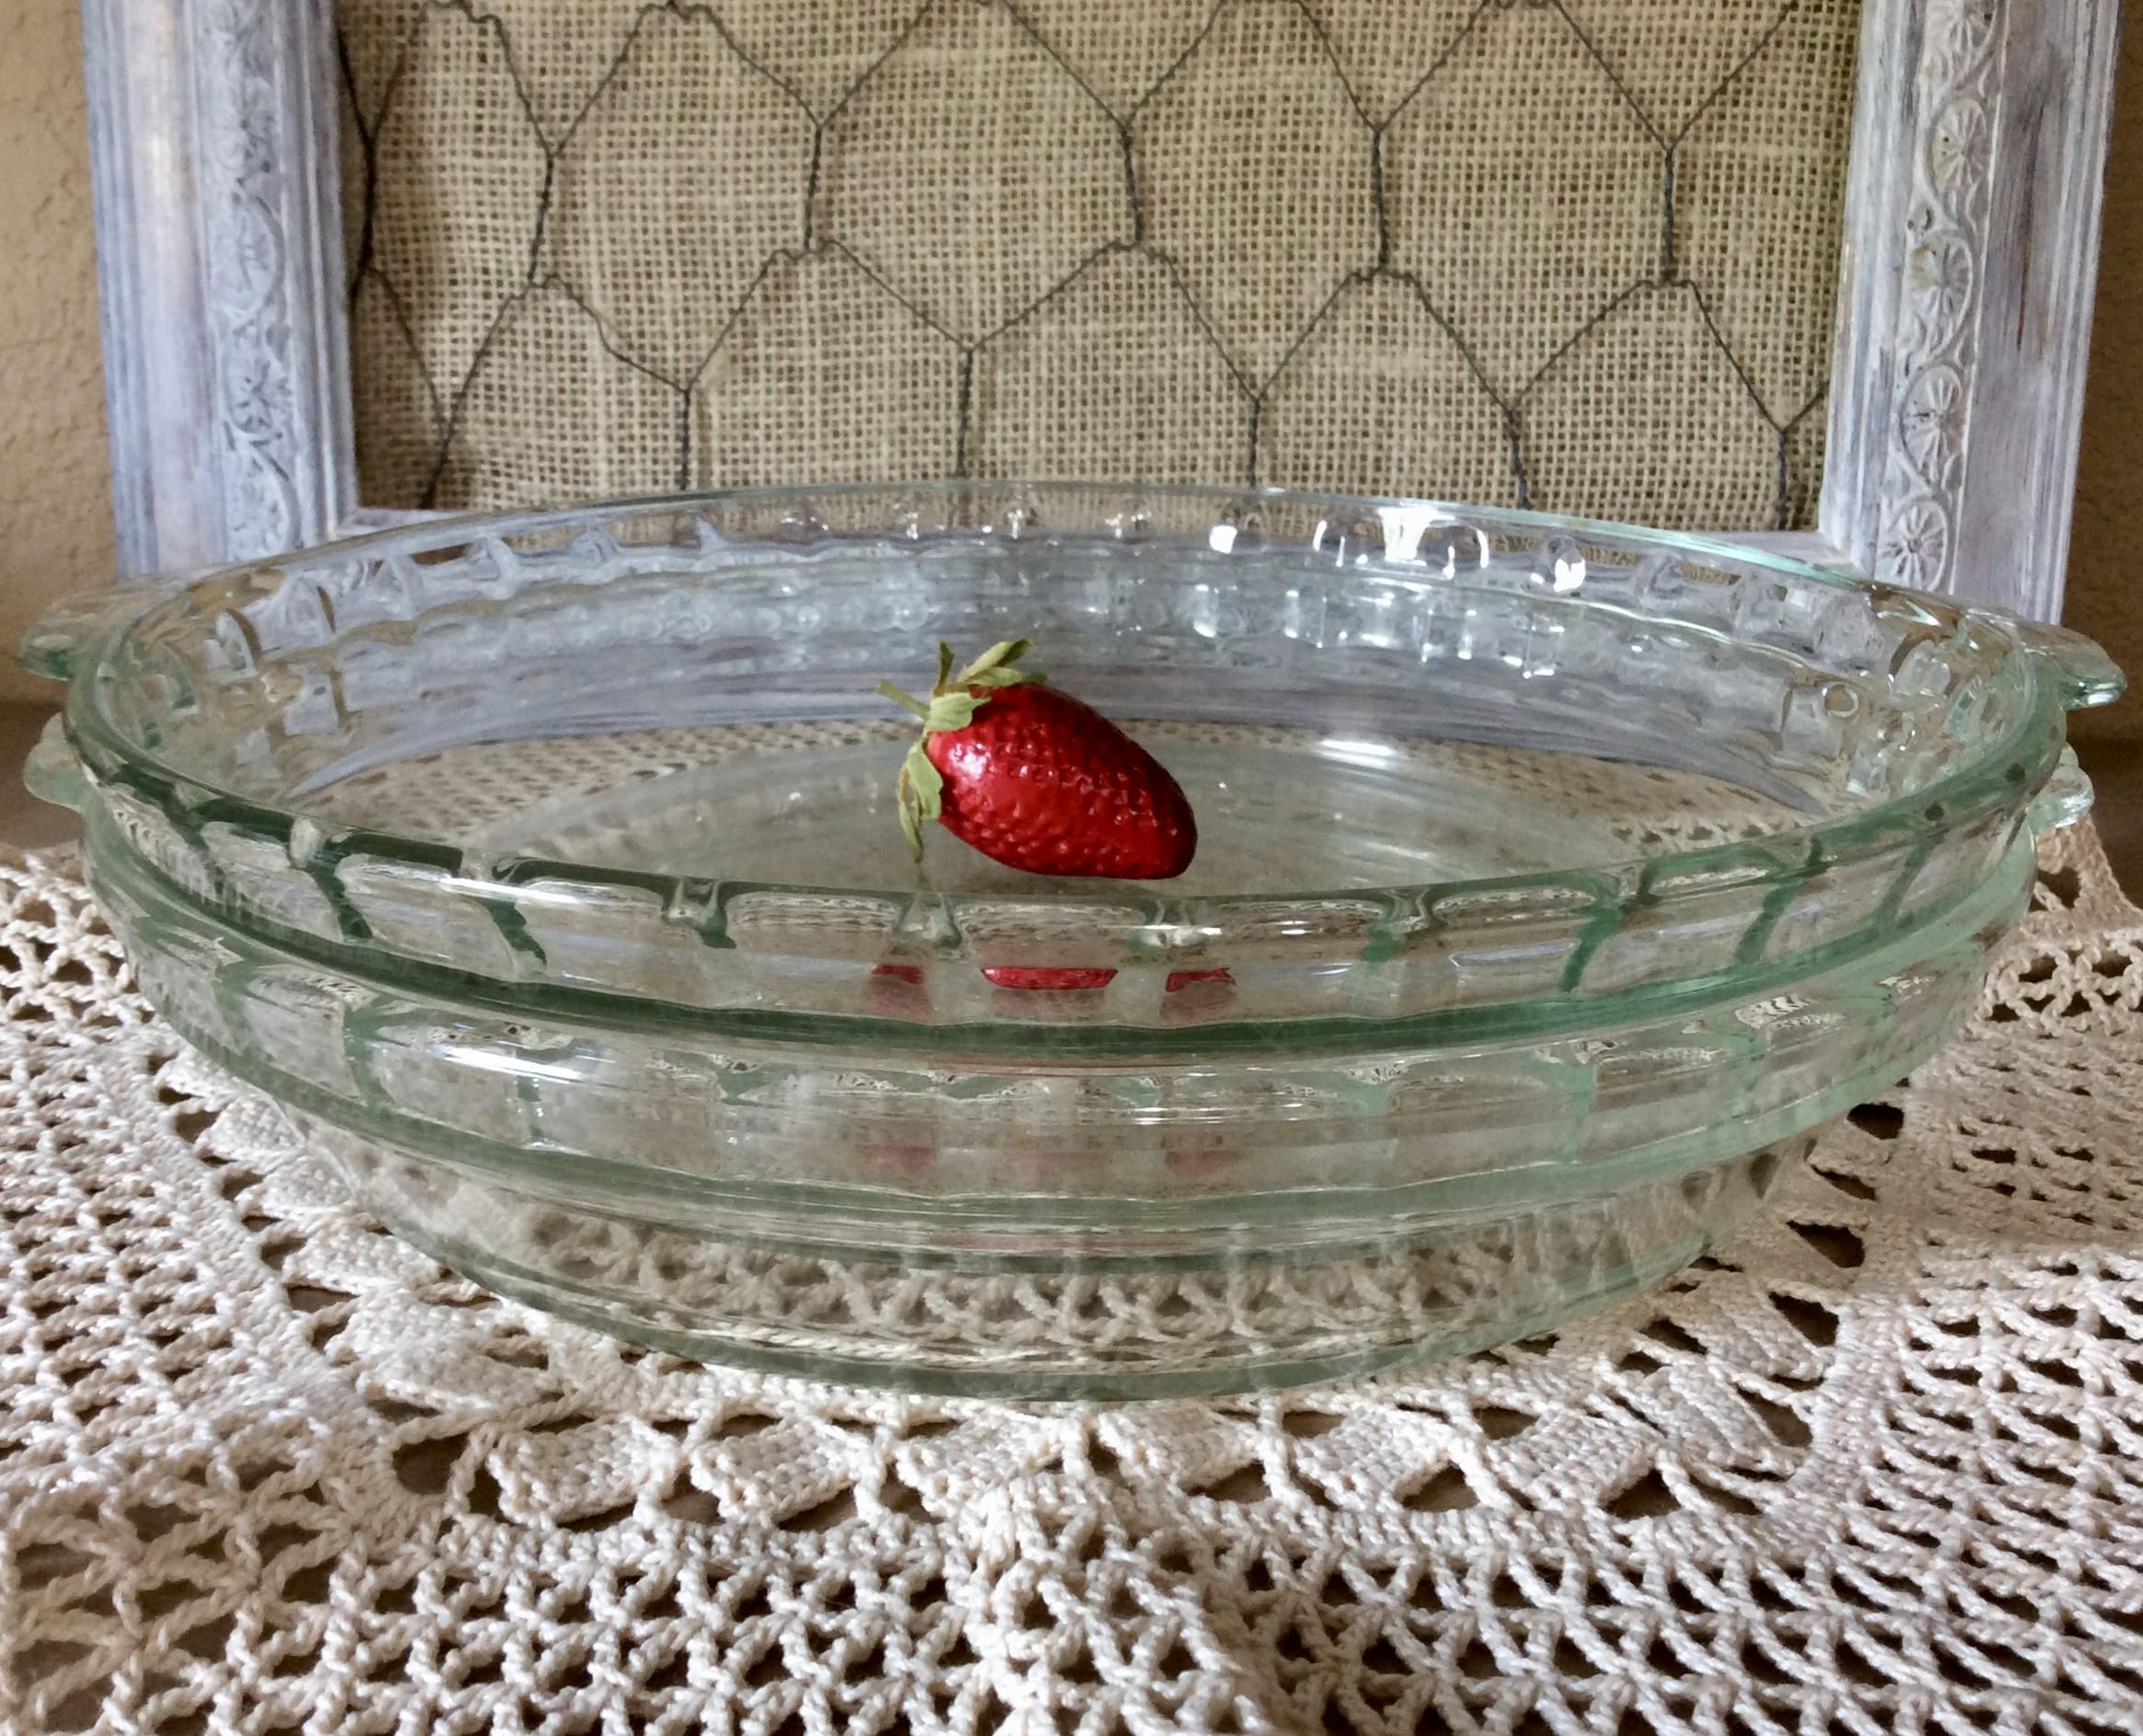 Set of 2 Pyrex Fluted Glass 9.5  Pie Plate With Scalloped Handles - Clear Green Tint Glass Deep Dish Pie Plate #229 - Fluted/Crimped Edge by Cottonu2026 & Set of 2 Pyrex Fluted Glass 9.5